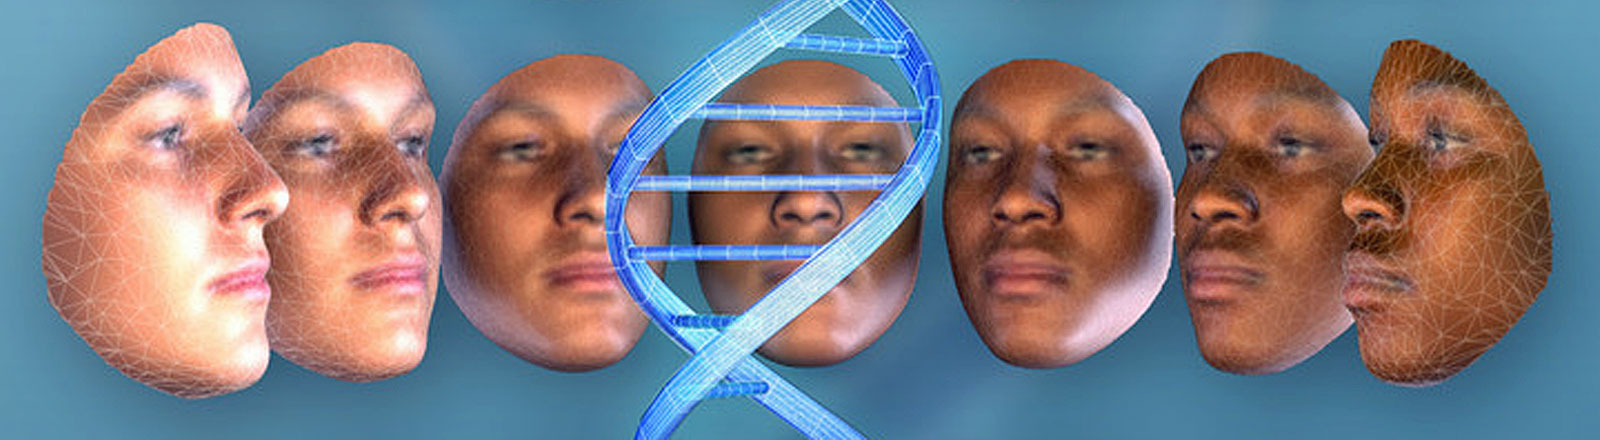 Images of faces showing the range of variation for both sex and ancestry with European on the left, African on the right, male at the top and female at the bottom, shown with DNA strand.